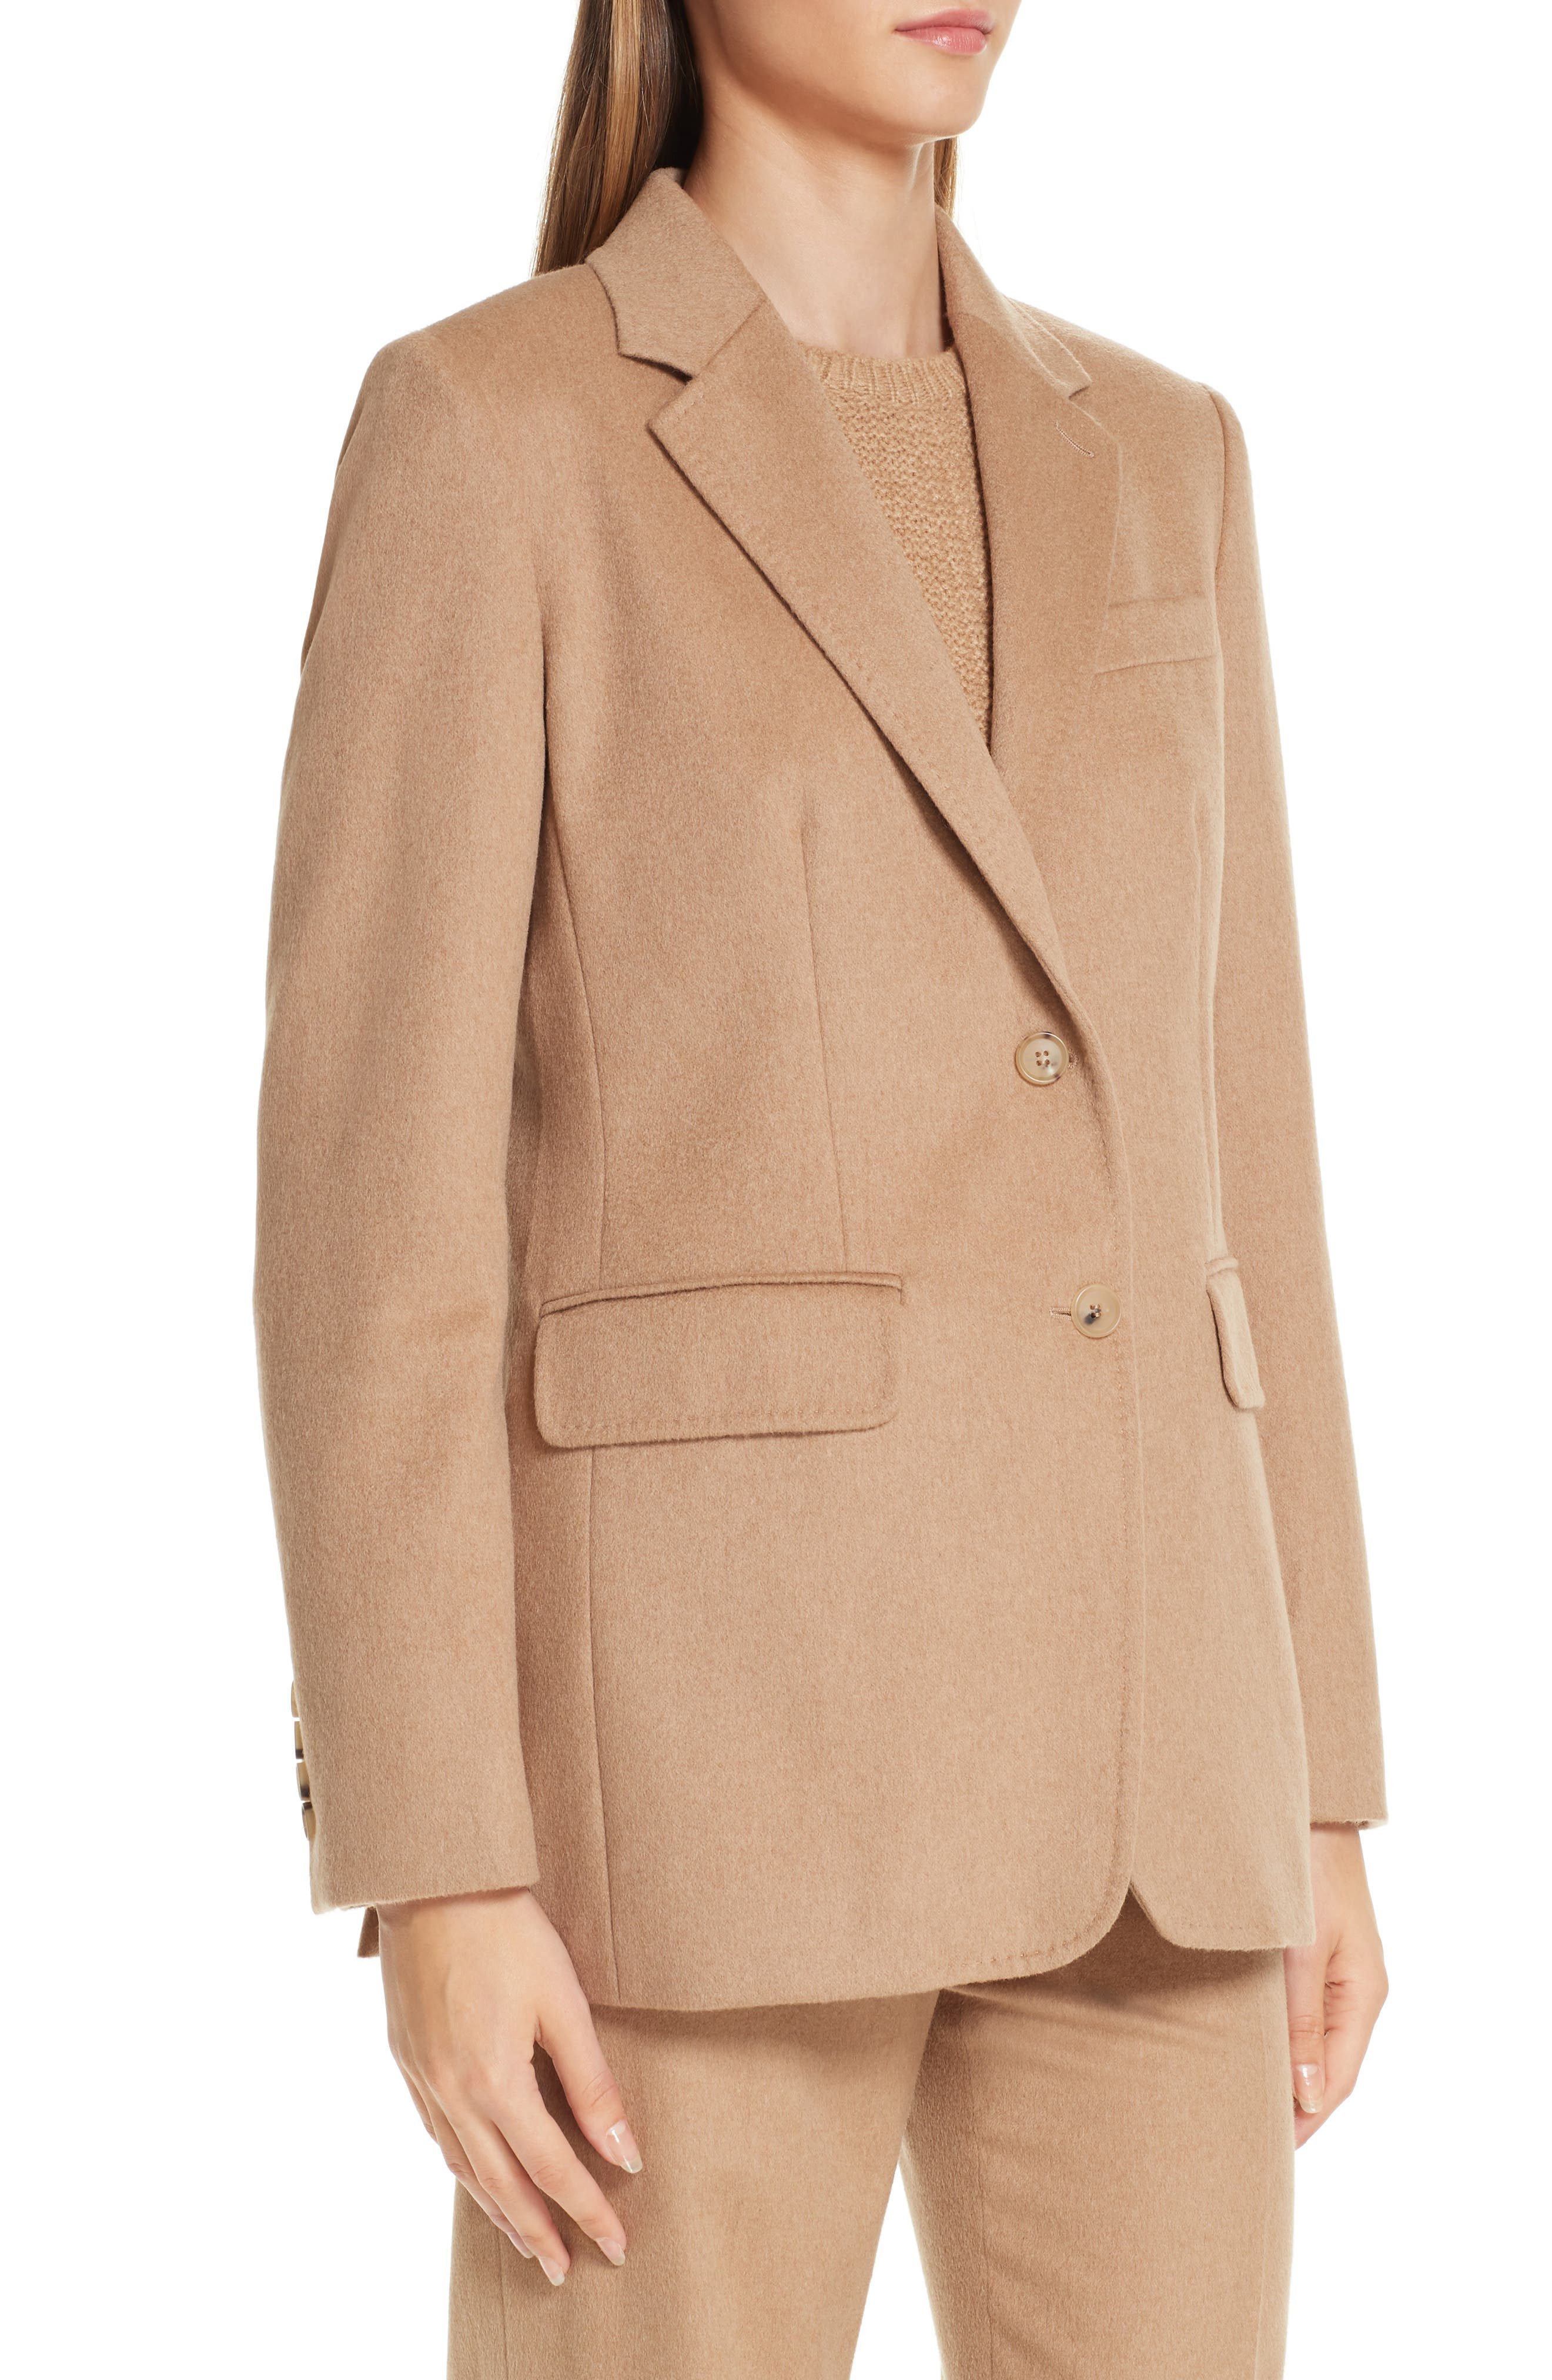 Panteon Camel Hair Jacket,                             Alternate thumbnail 4, color,                             232